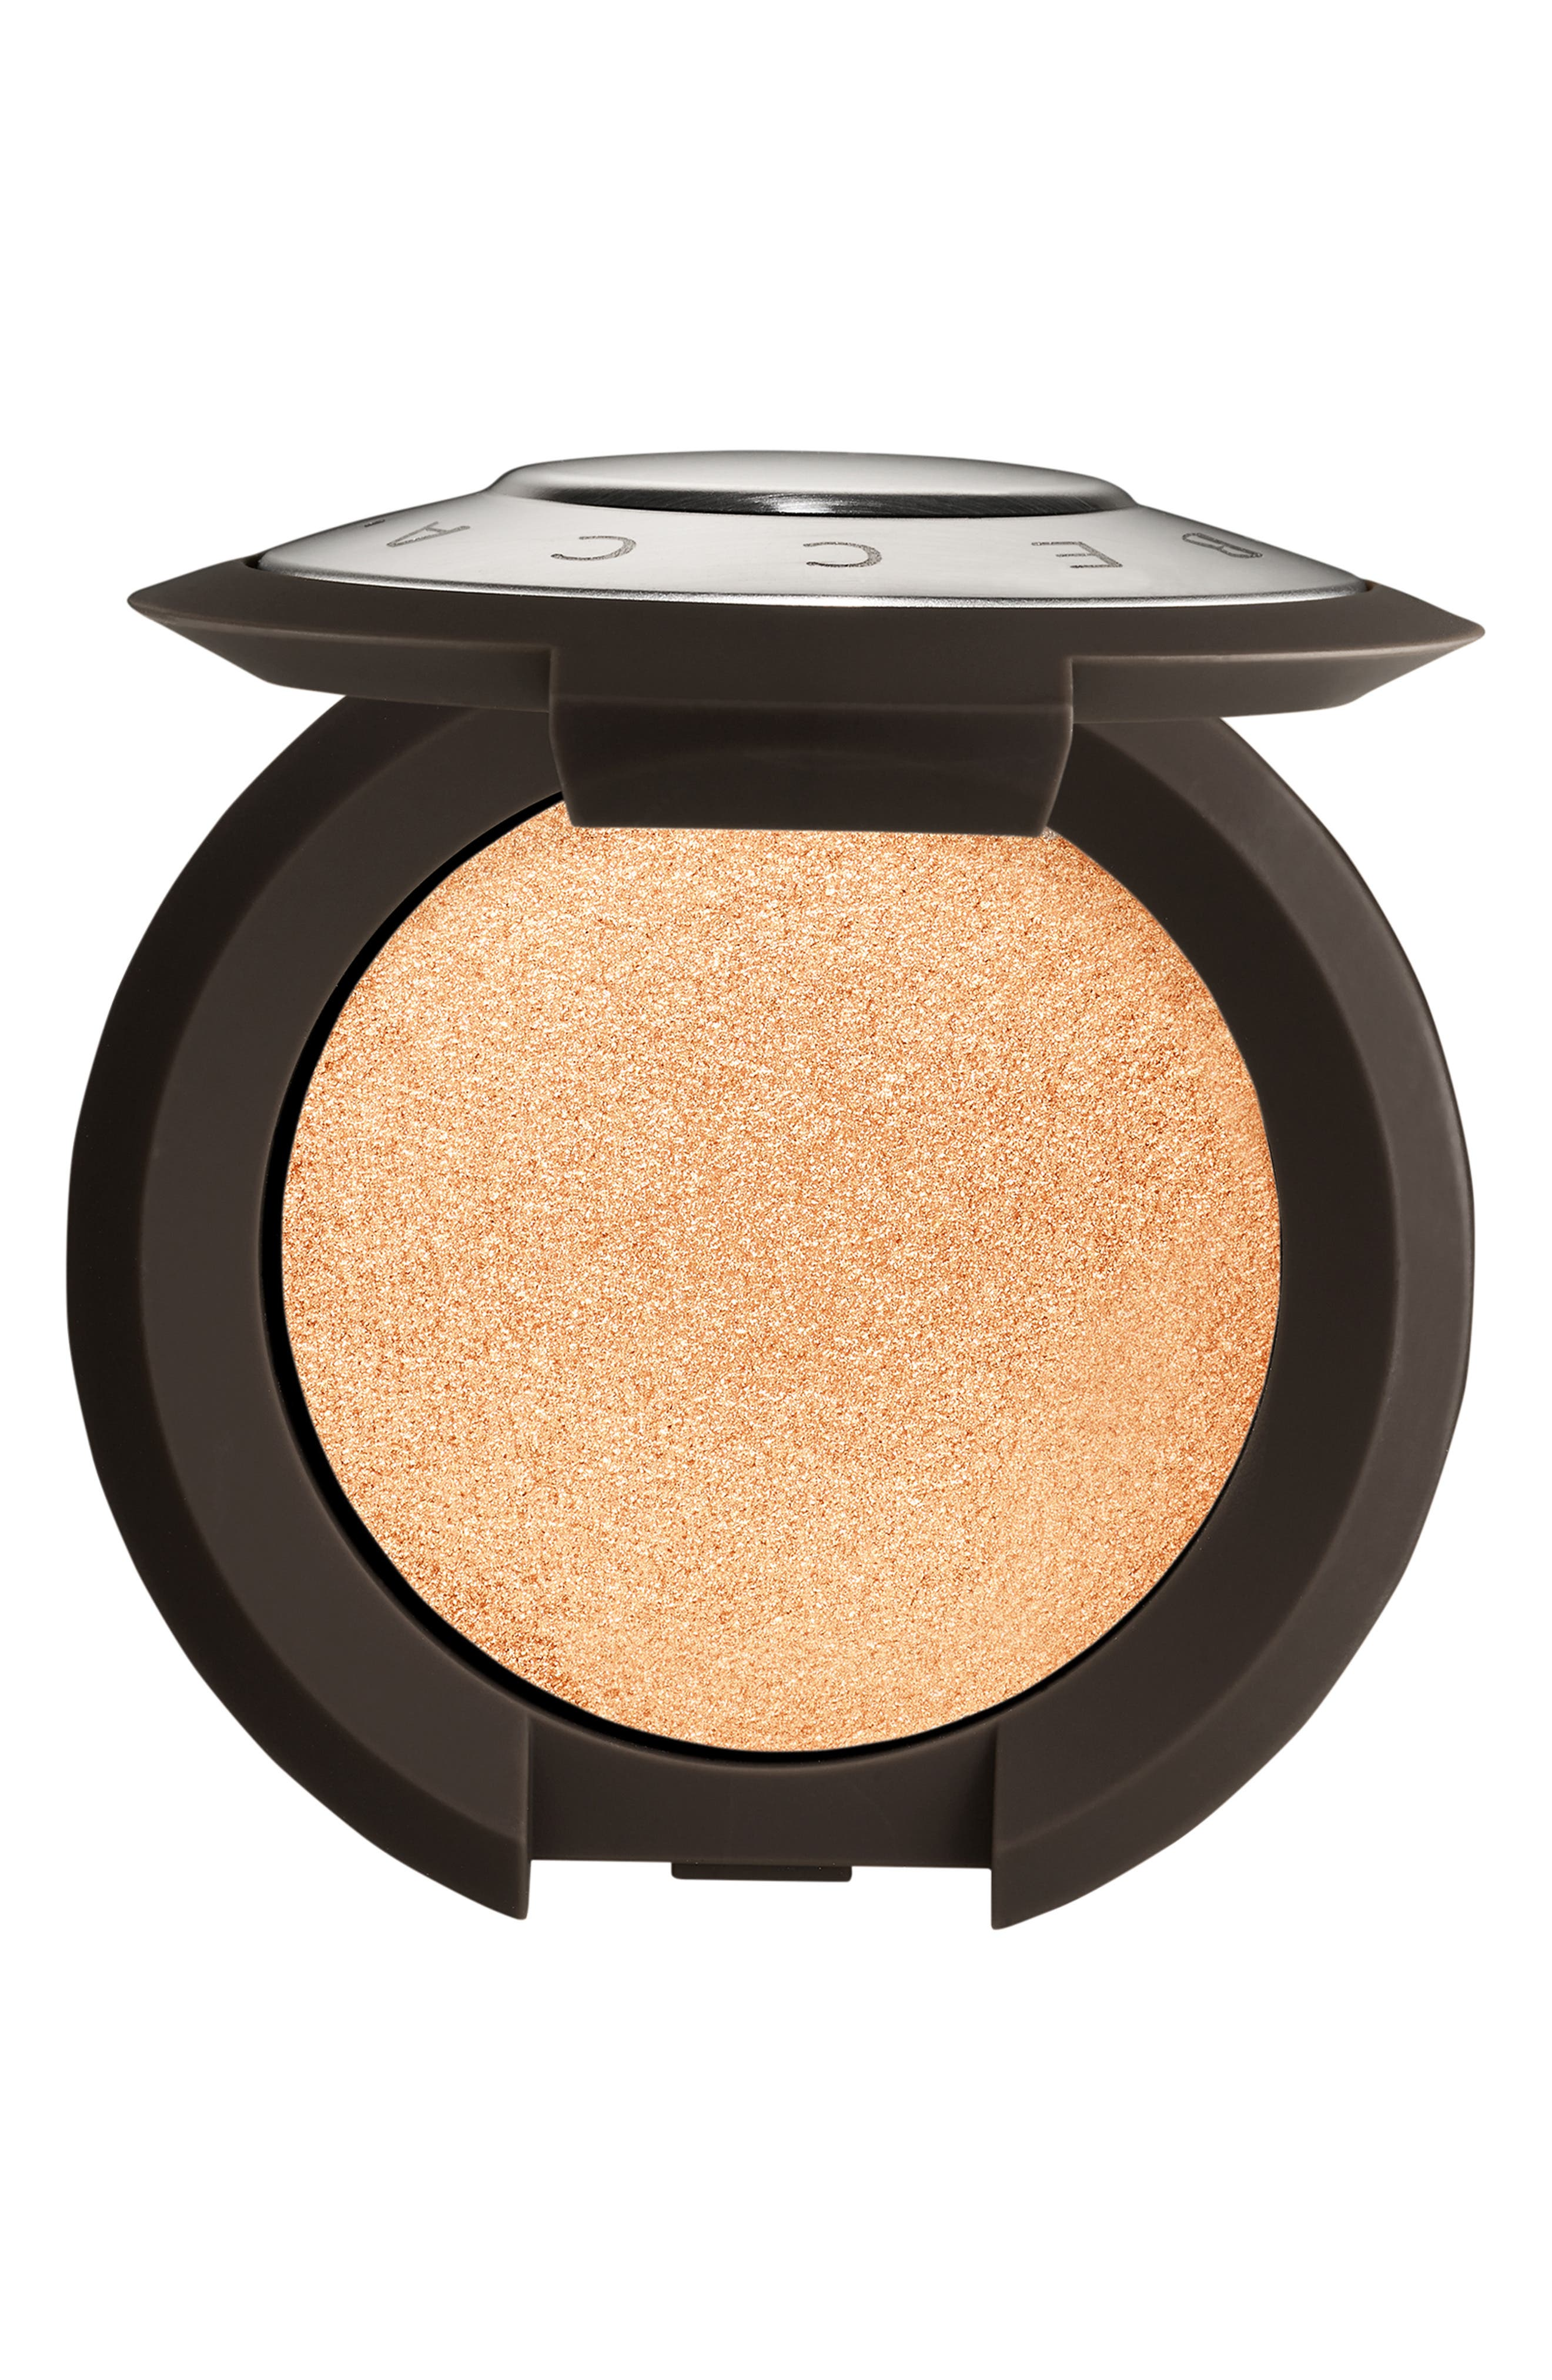 BECCA COSMETICS BECCA Shimmering Skin Perfector Pressed Highlighter, Main, color, CHAMPAGNE POP / MINI